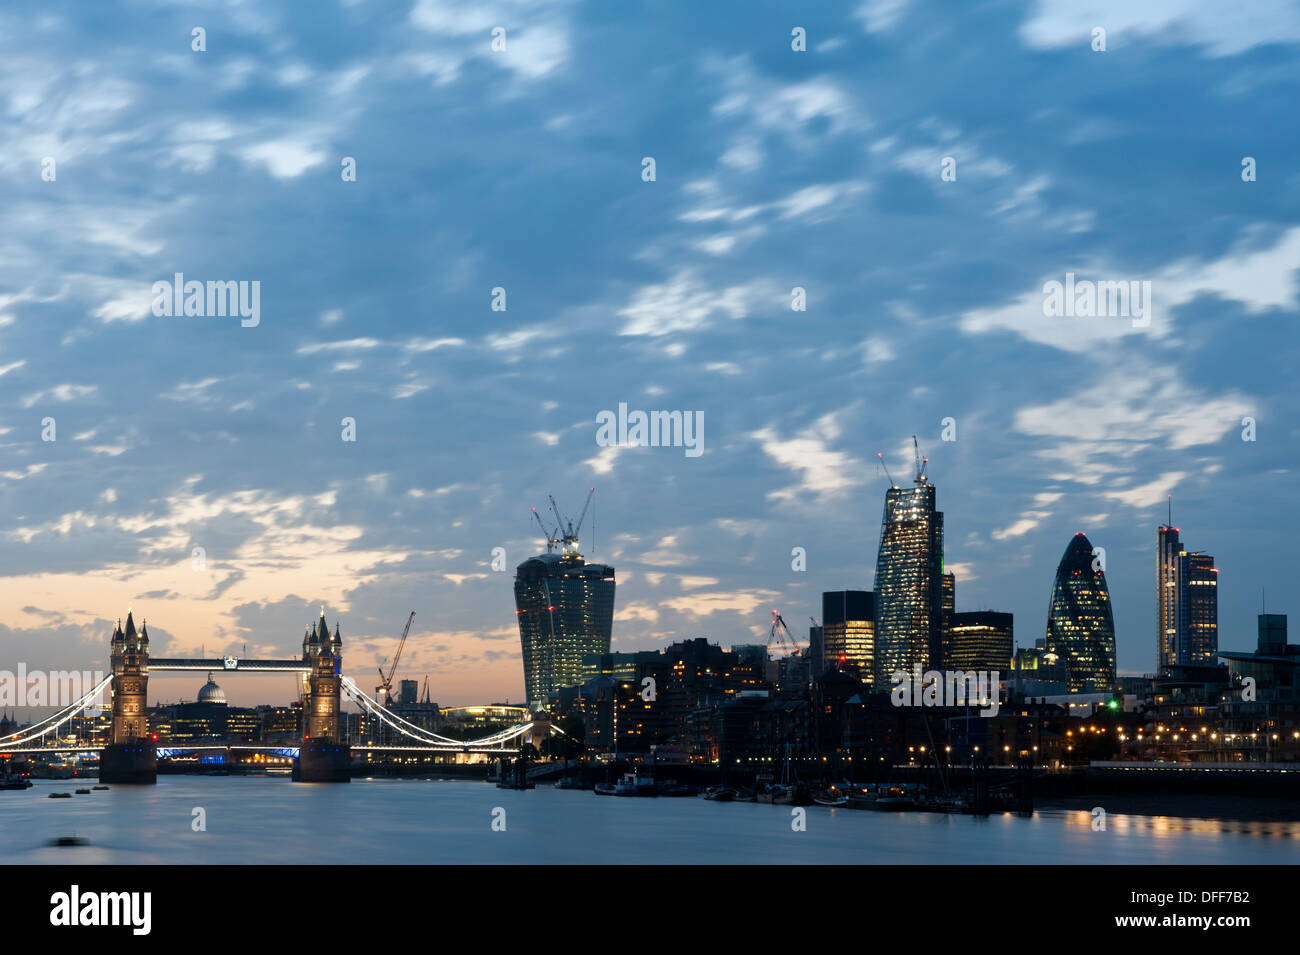 New London Skyline 2013 with Tower Bridge and skyscrapers of The City, 20 Fenchurch Street (L), 122 Leadenhall St and Gherkin. - Stock Image